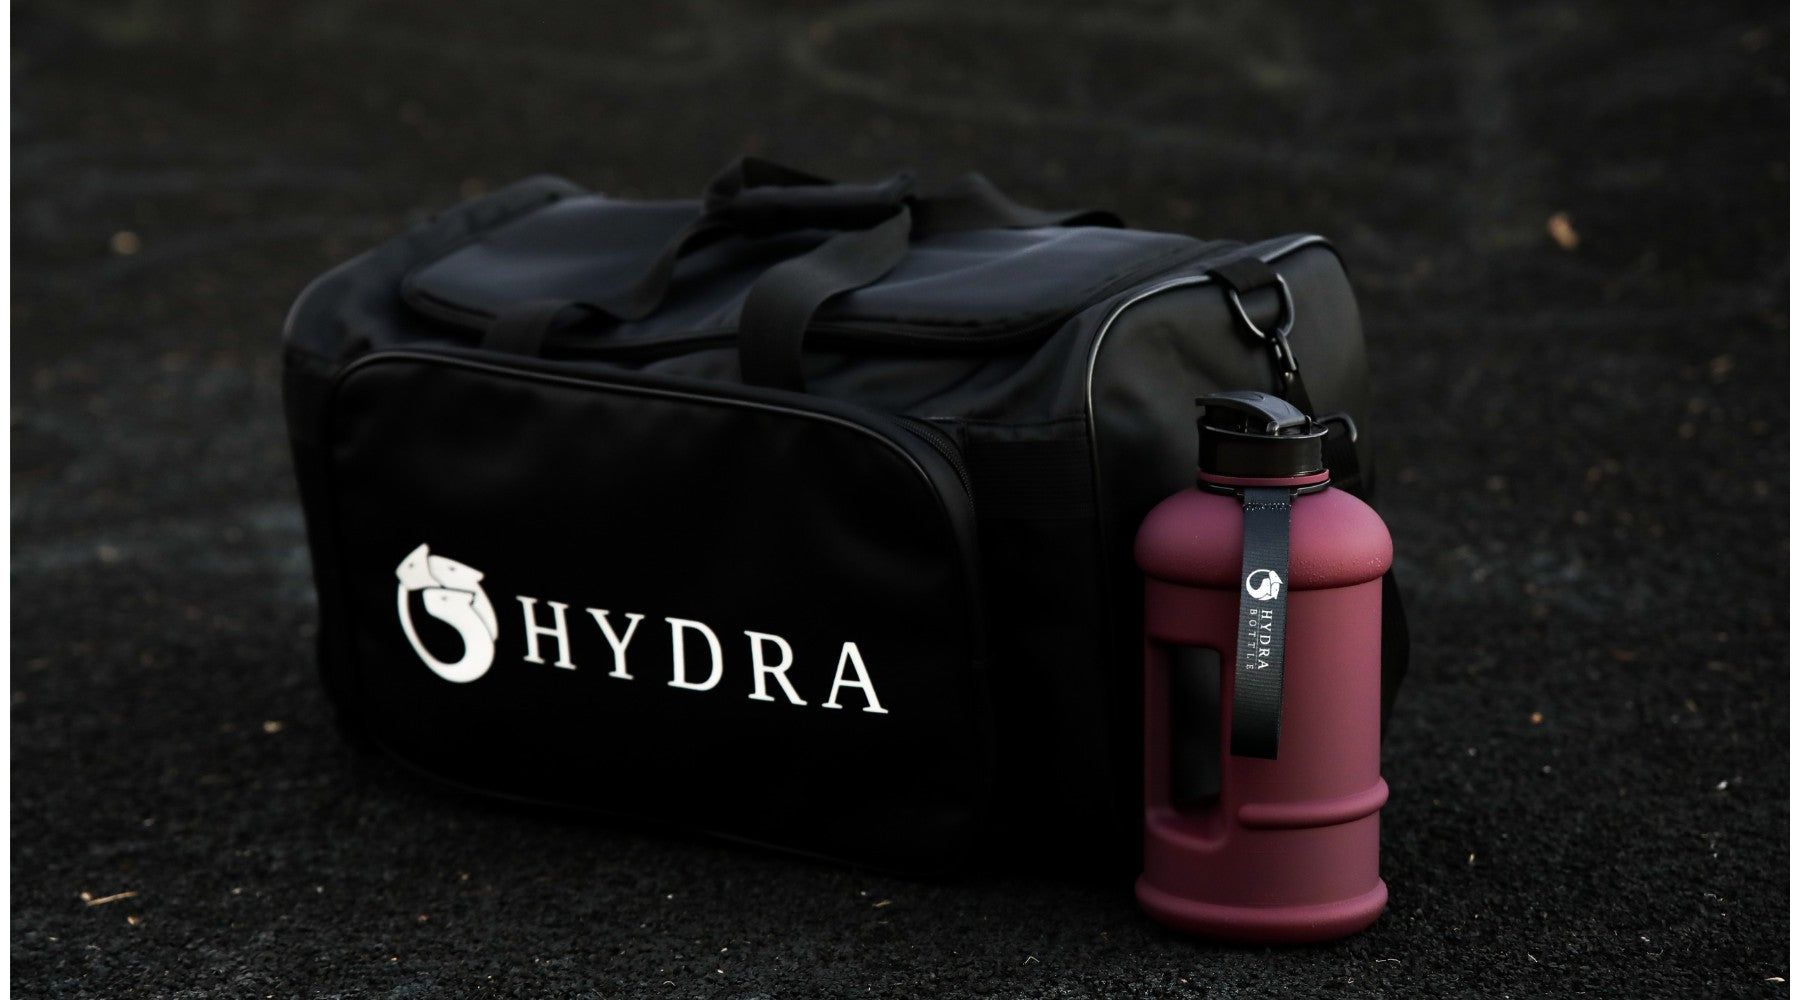 Hydra duffle bag & 1L water bottle